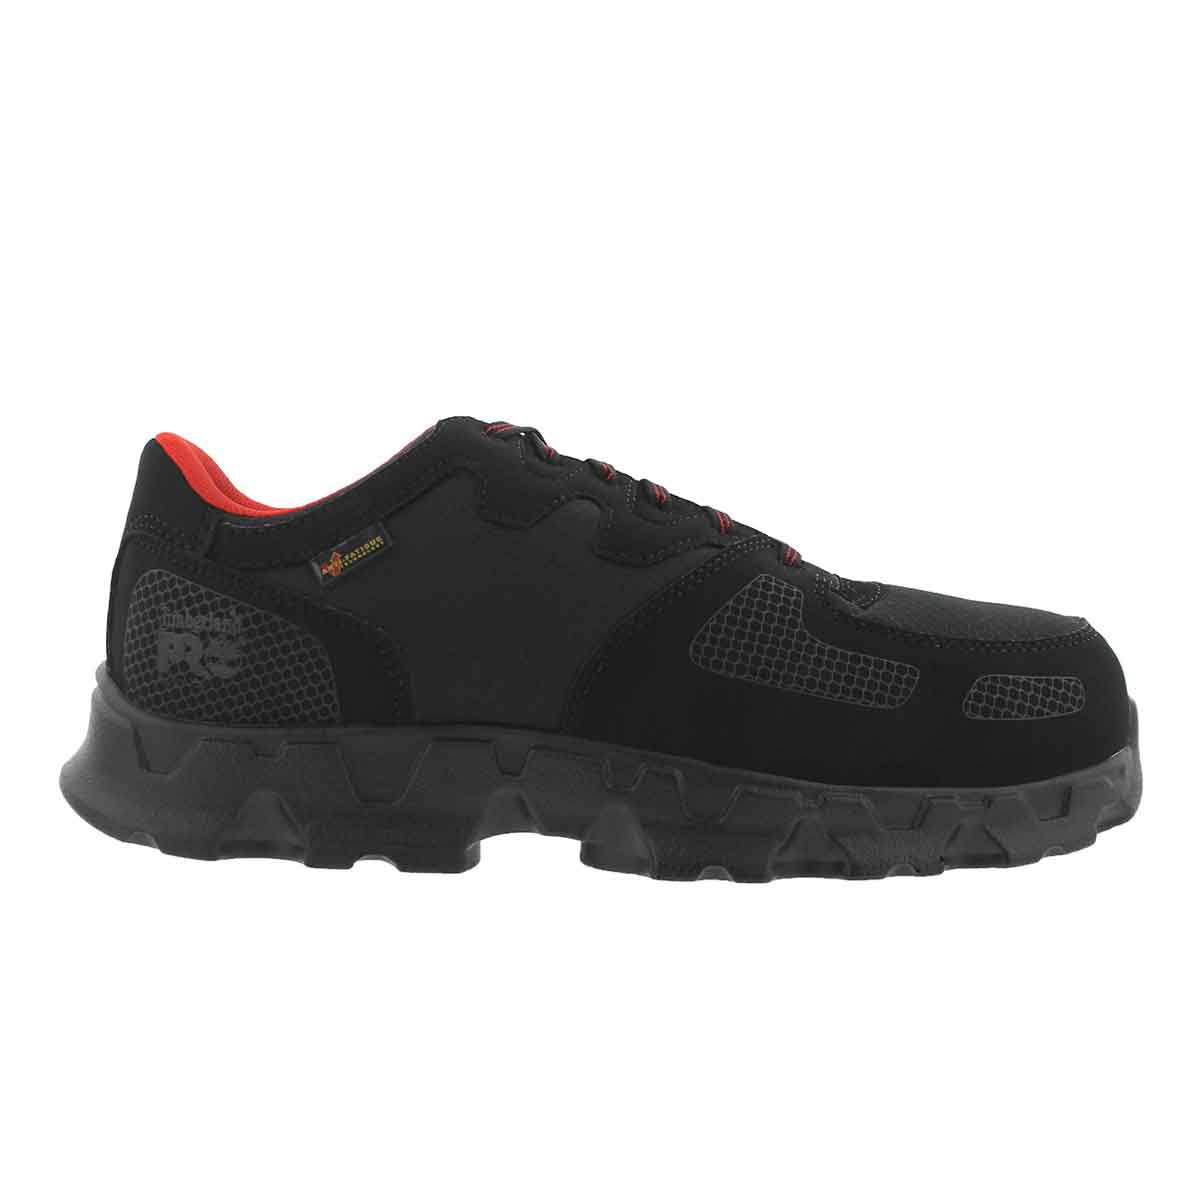 Mns Powertrain blk/red CSA sneaker